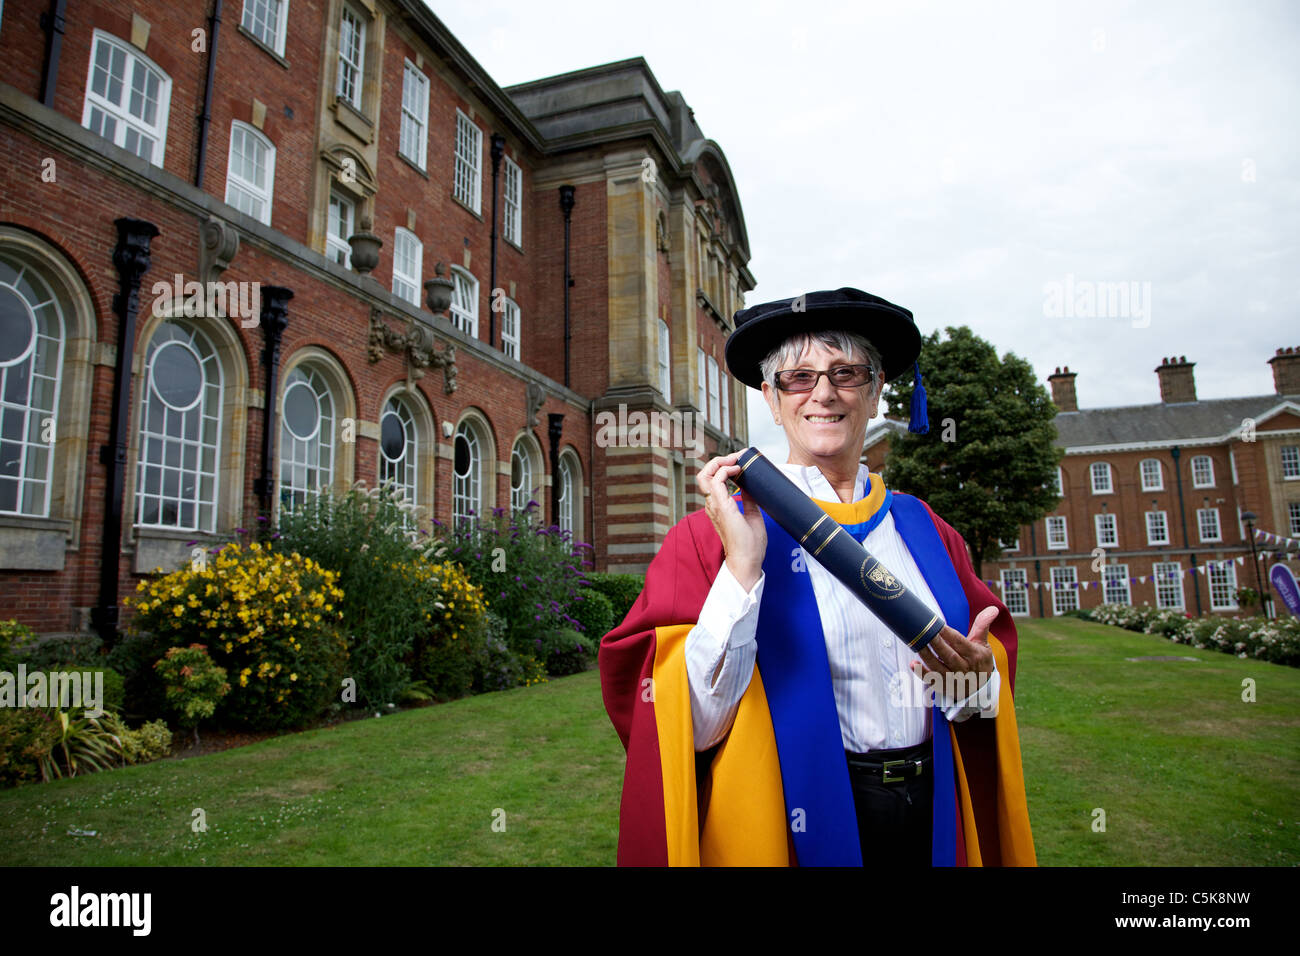 Dorothy Hyman receives an Honorary Doctorate of Sports Science award from Leeds Metropolitan University, 22nd July - Stock Image